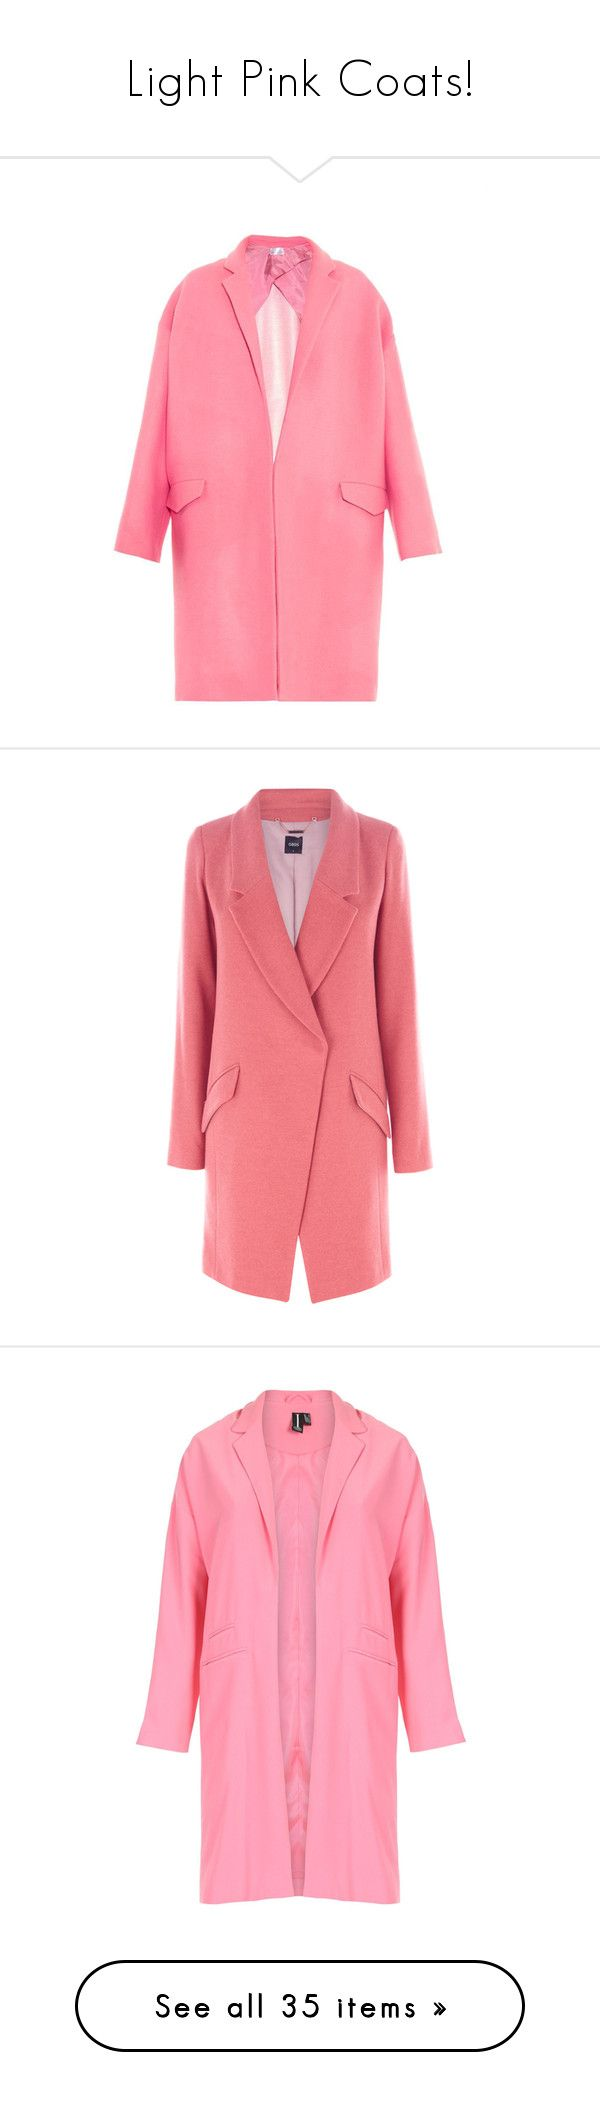 """""""Light Pink Coats!"""" by miss-image ❤ liked on Polyvore featuring outerwear, coats, jackets, tops, pink, long pink coat, raey, pink coat, cocoon coats and pink cocoon coat"""